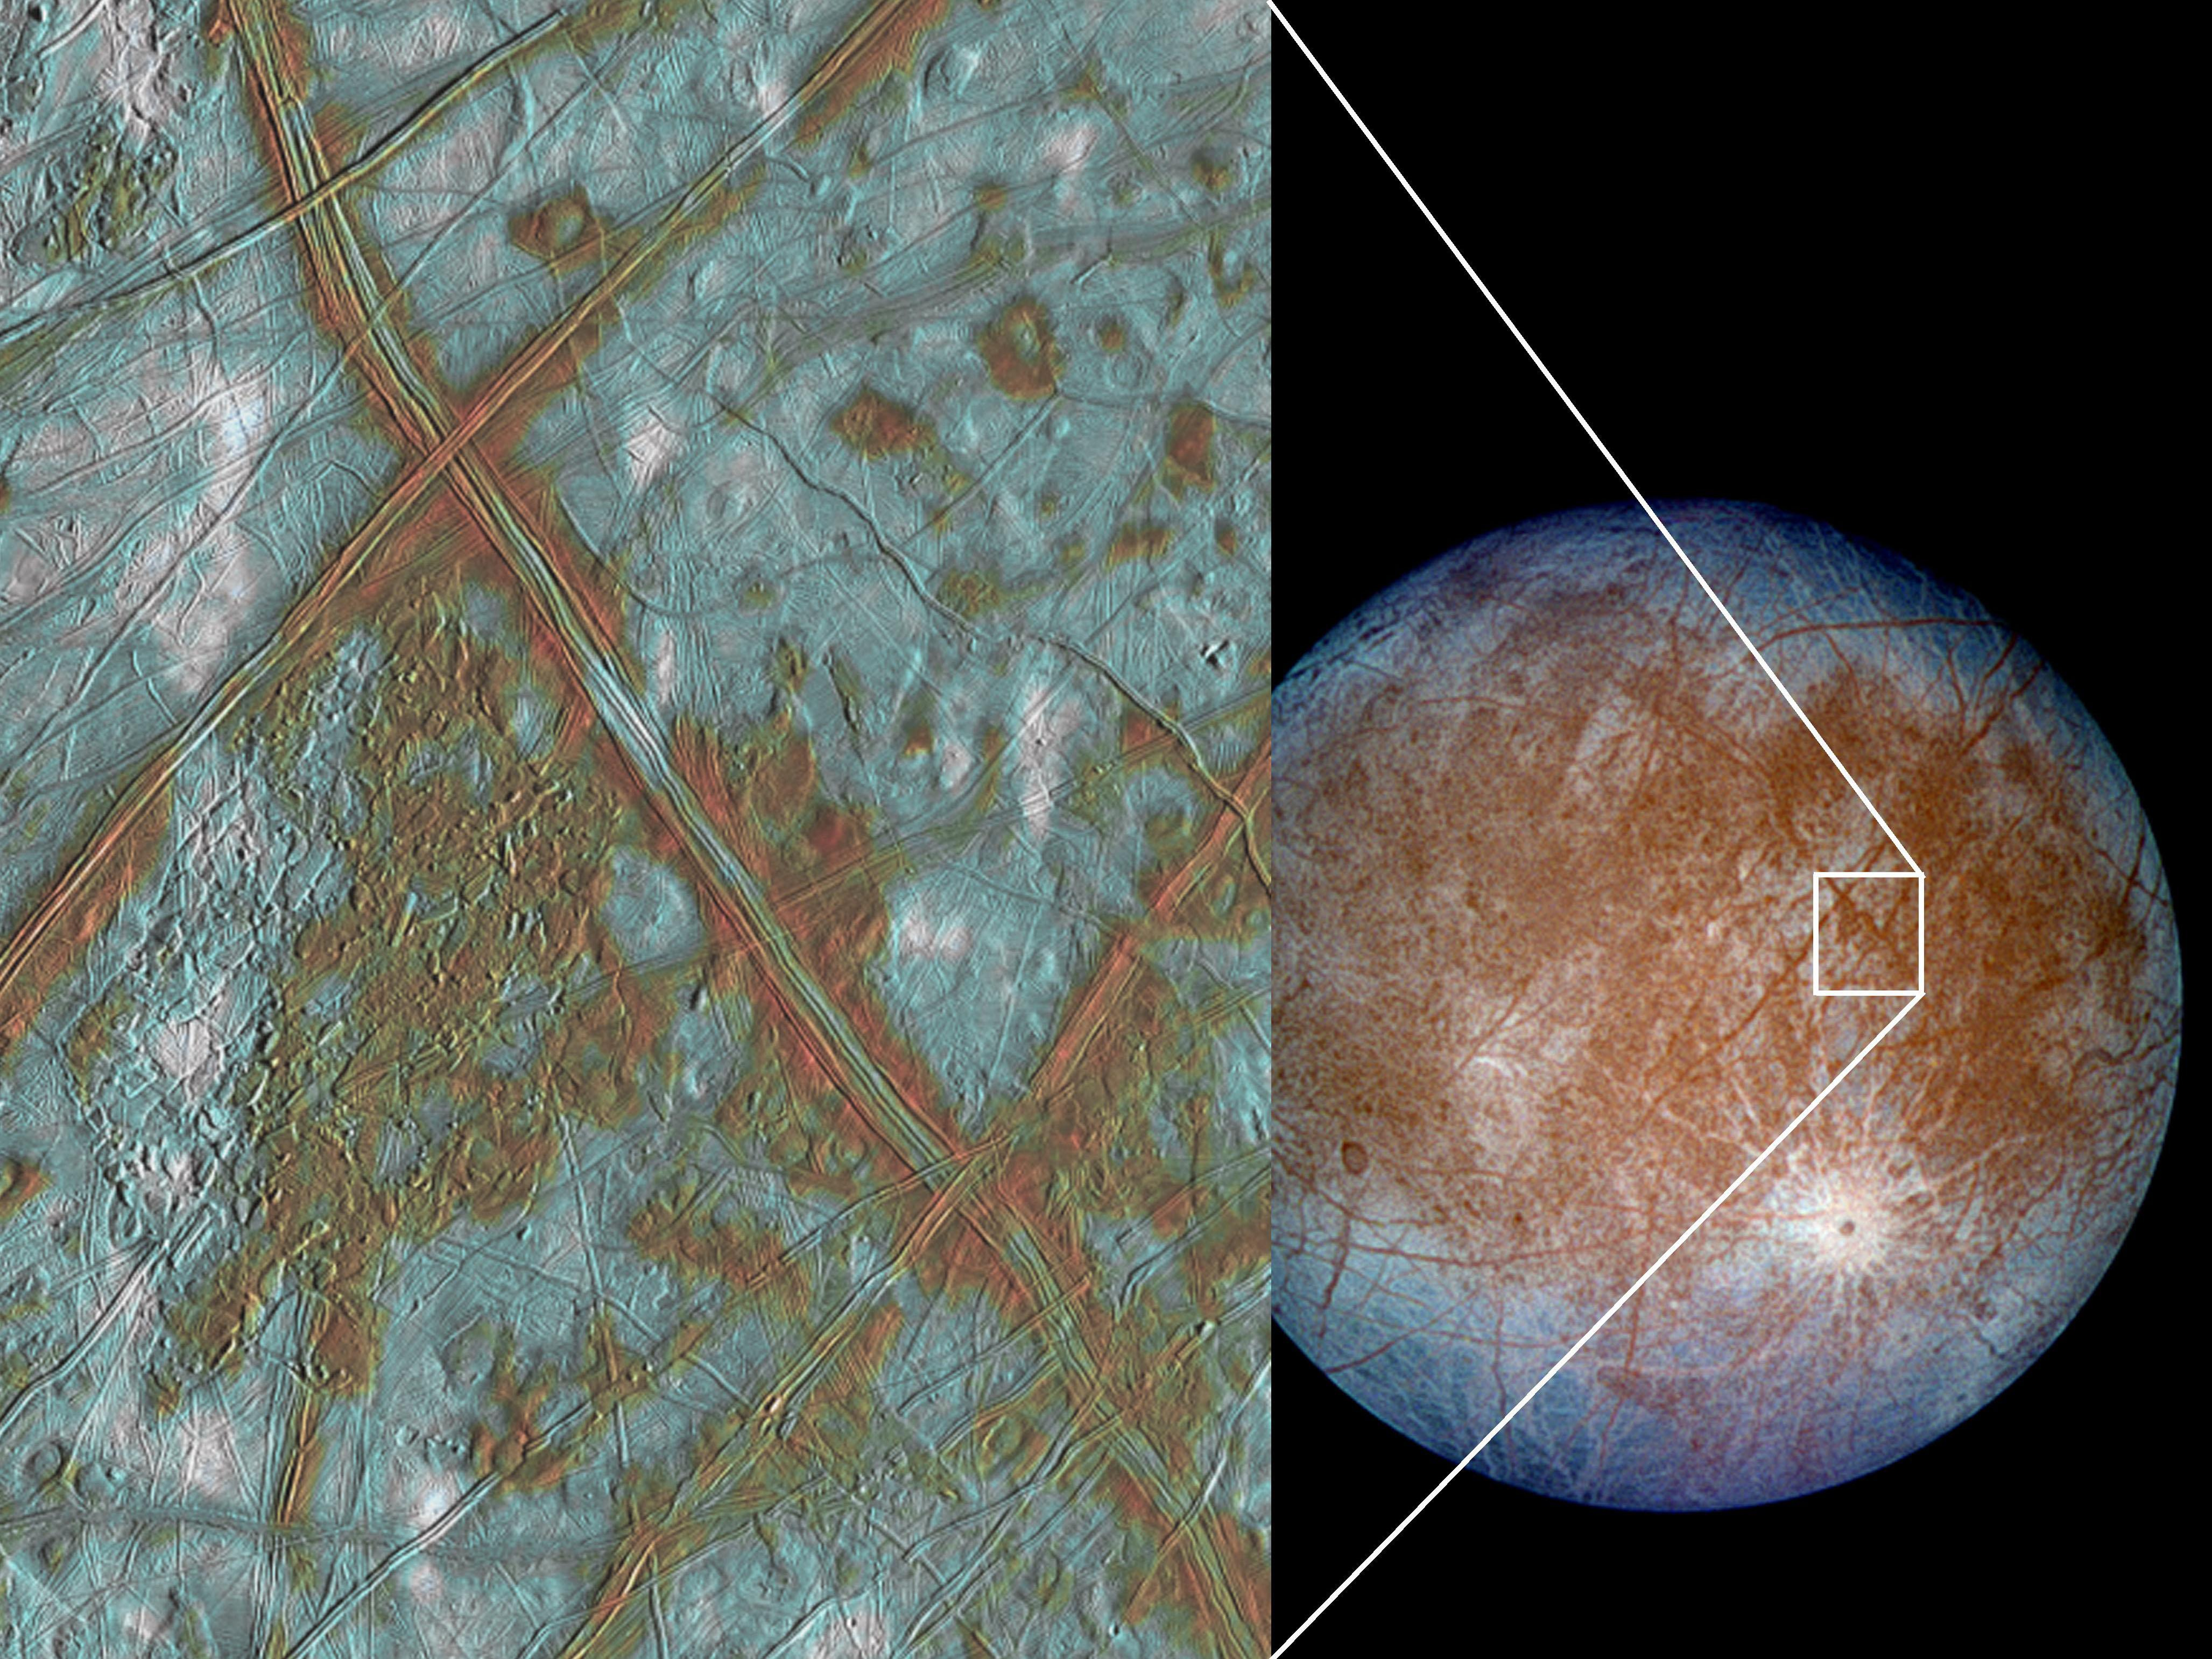 Color image of Europa showing a close of view of blocky terrain on the surface.